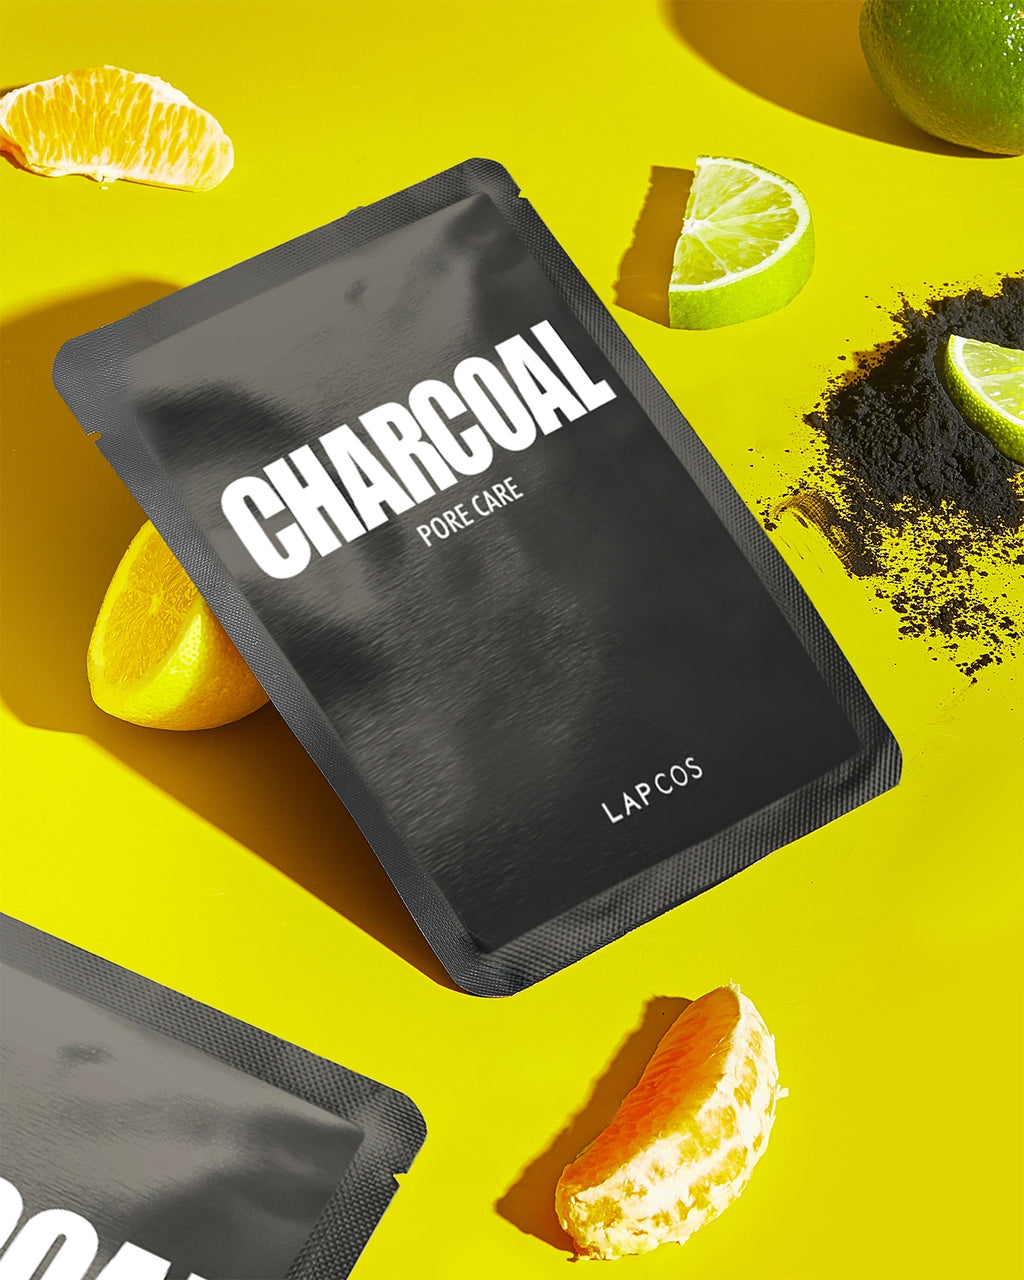 LAPCOS Charcoal Sheet Mask